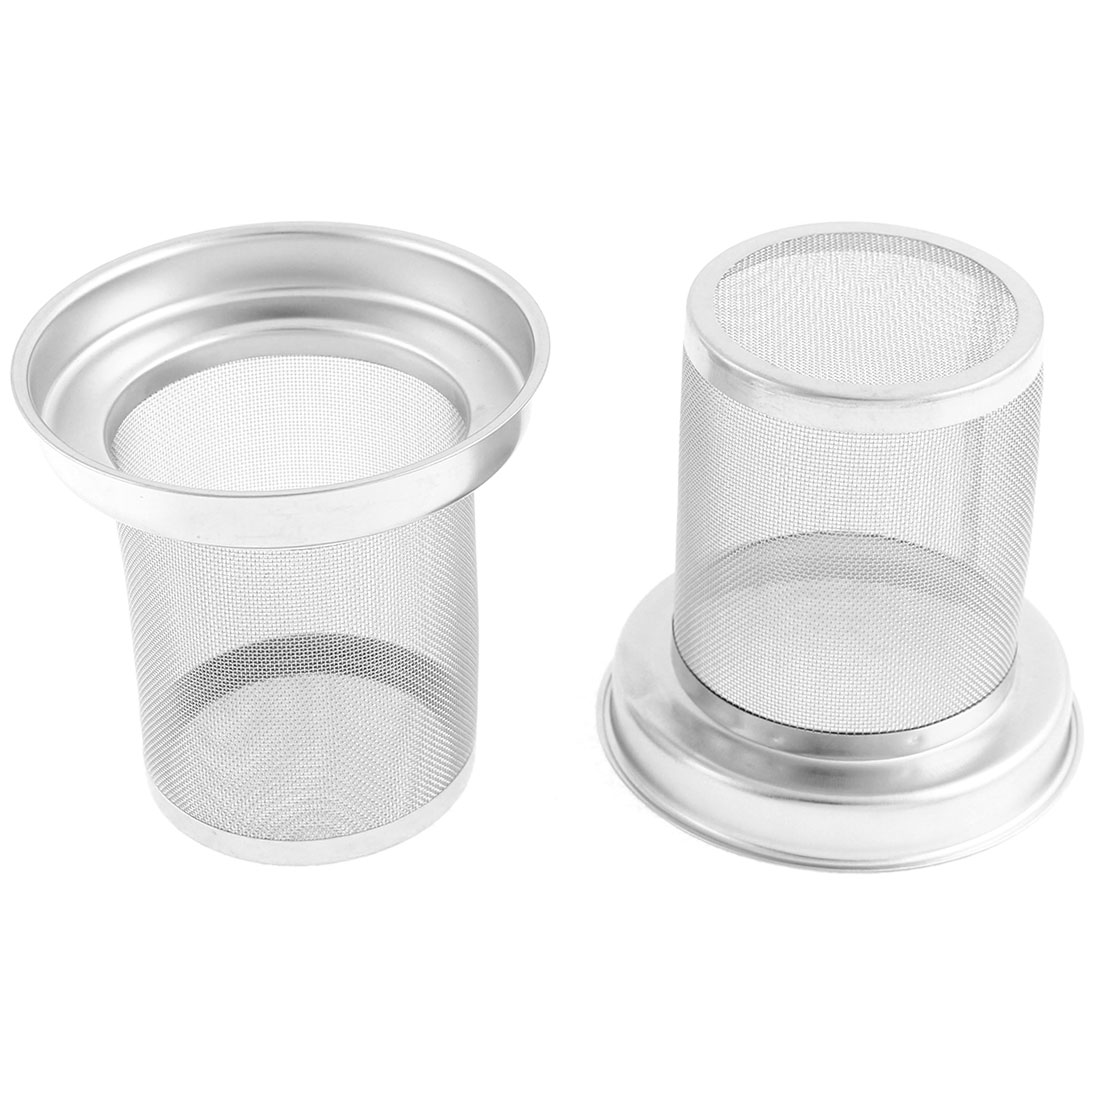 2 Pcs Stainless Steel Round Loose Tea Infuser Filter Strainer Sieve Cup Mug